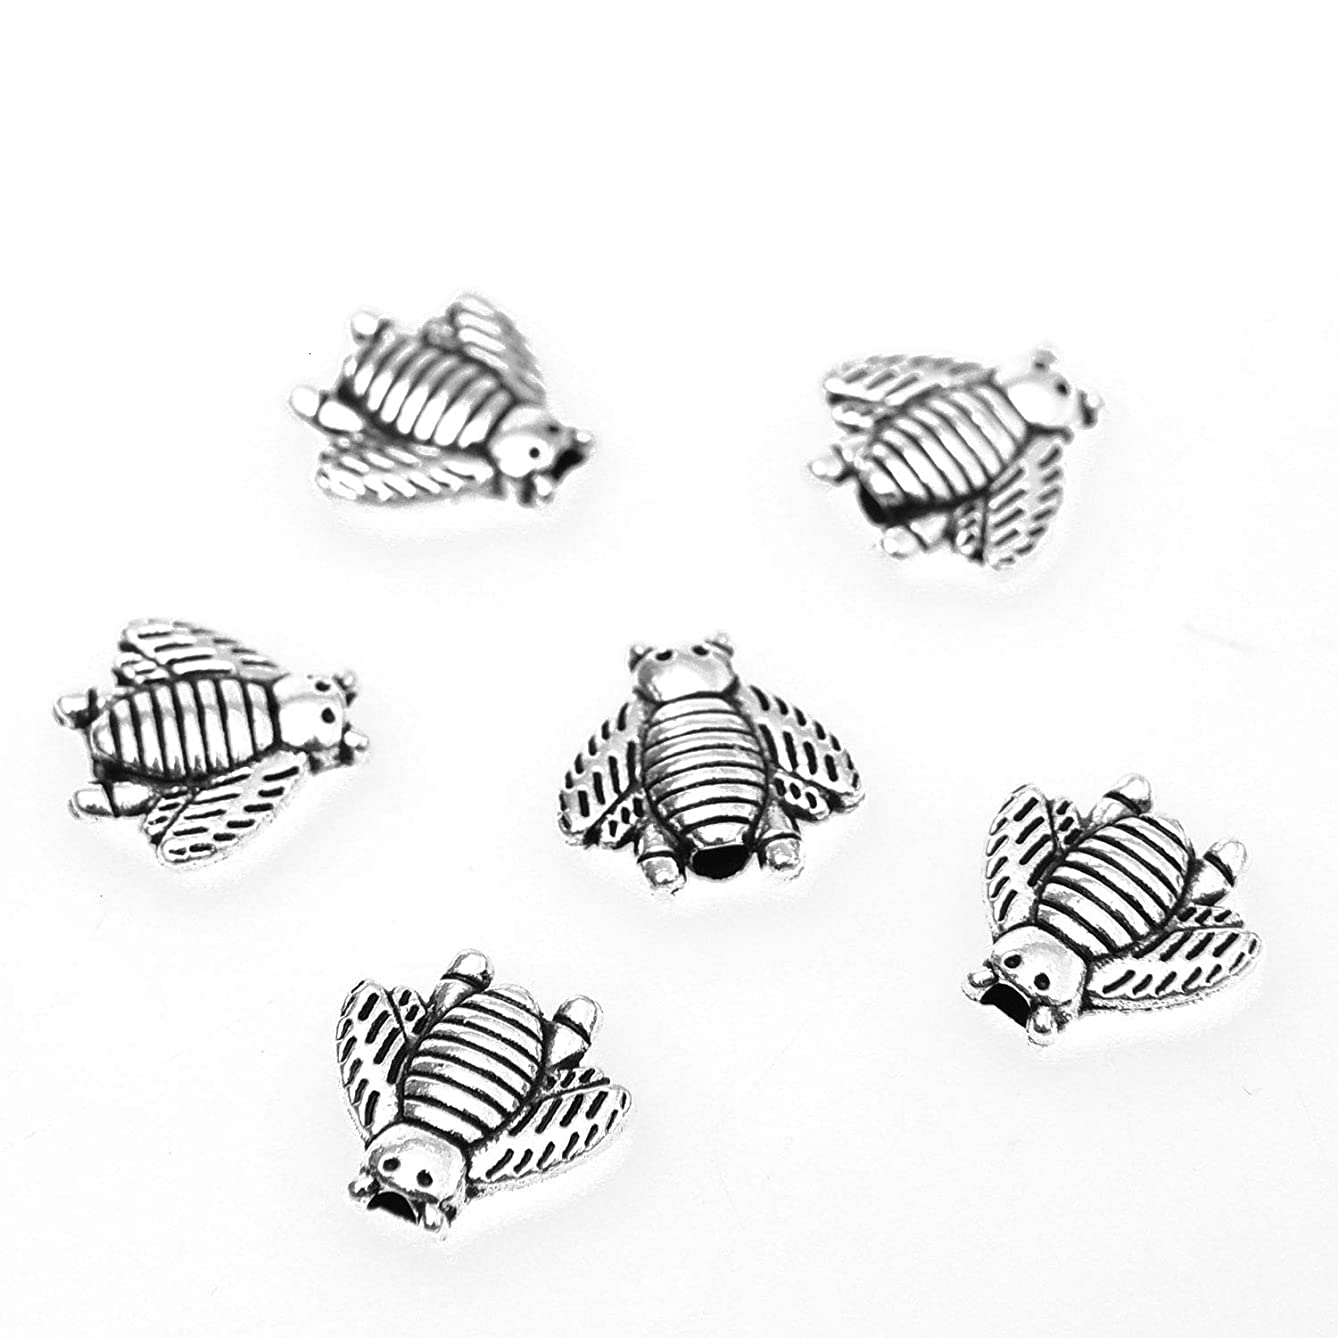 Monrocco 100 Pcs Antique Silver Metal Alloy Bee Spacer Beads Charm for Bracelets Jewelry Making